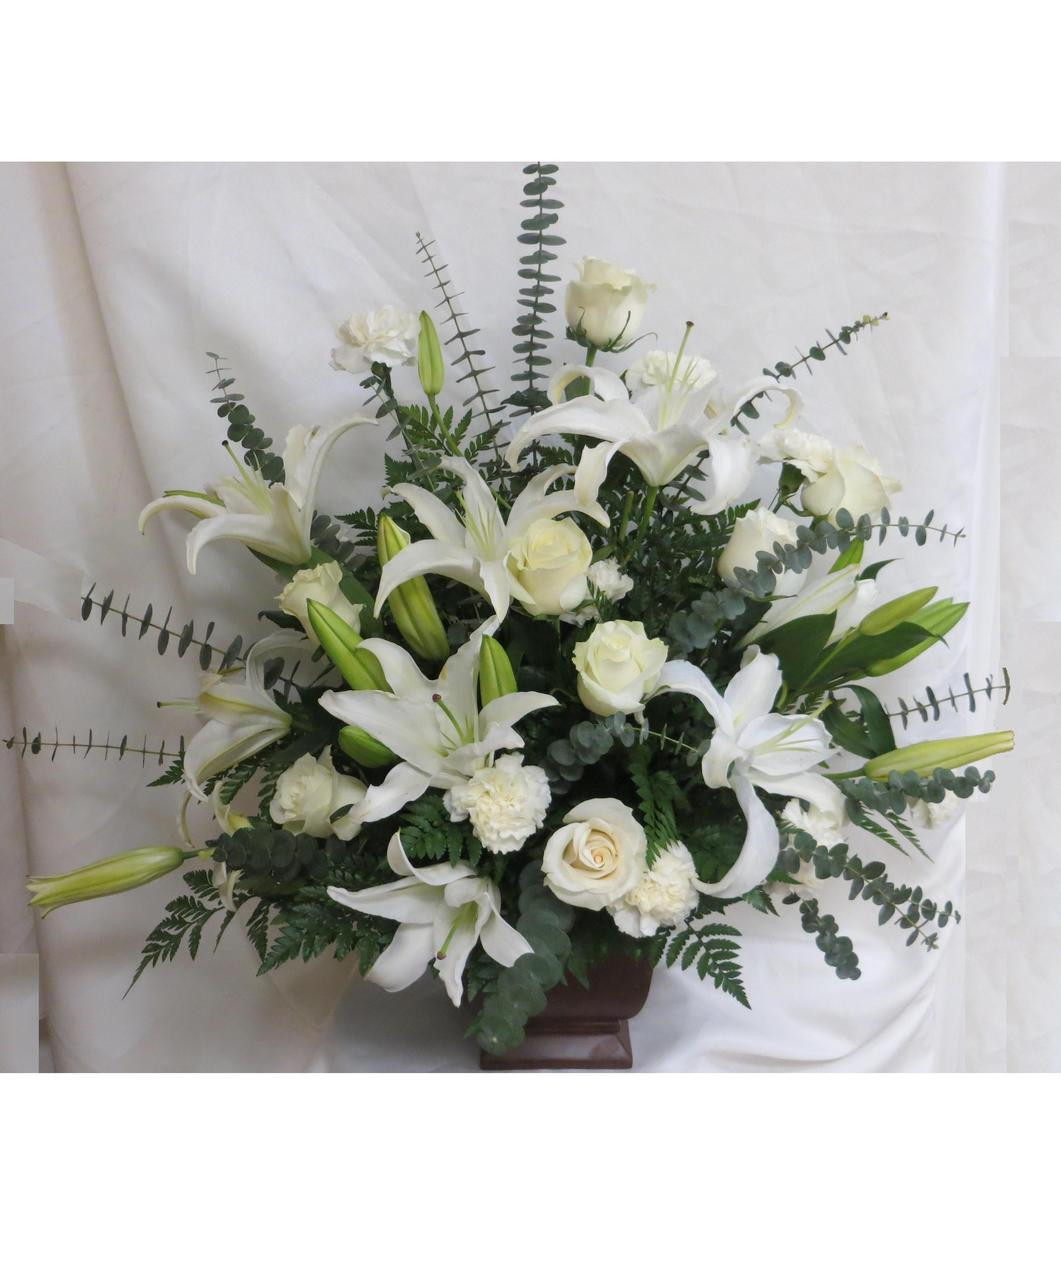 White funeral flowers delivered to houston funeral homes in houston tx white serenity urn flower arrangement are all white funeral flowers in a classic heritage urn and izmirmasajfo